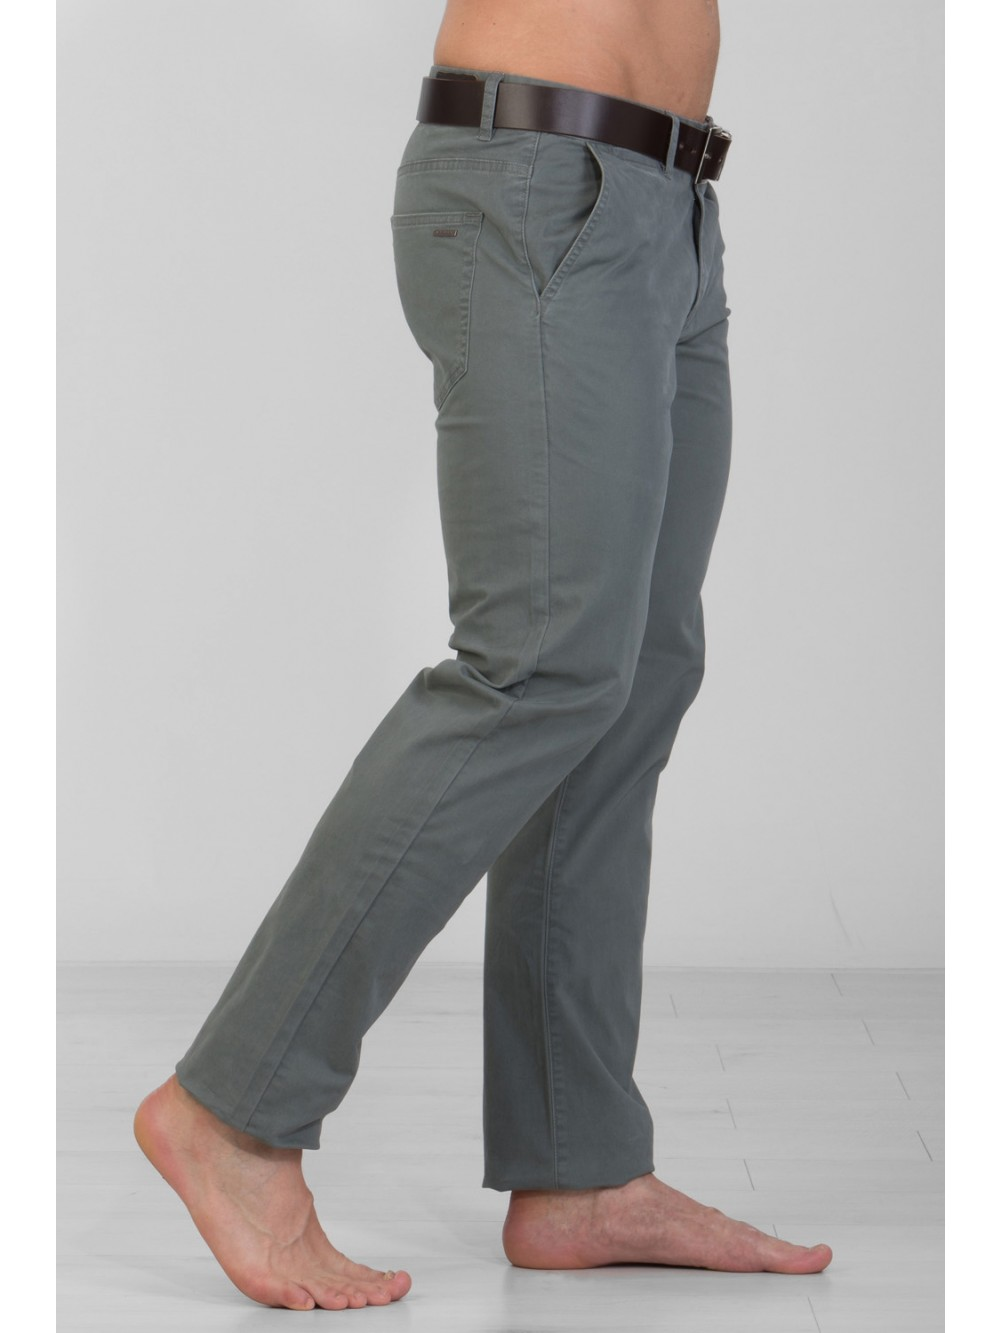 Mens Pants twill JSM248